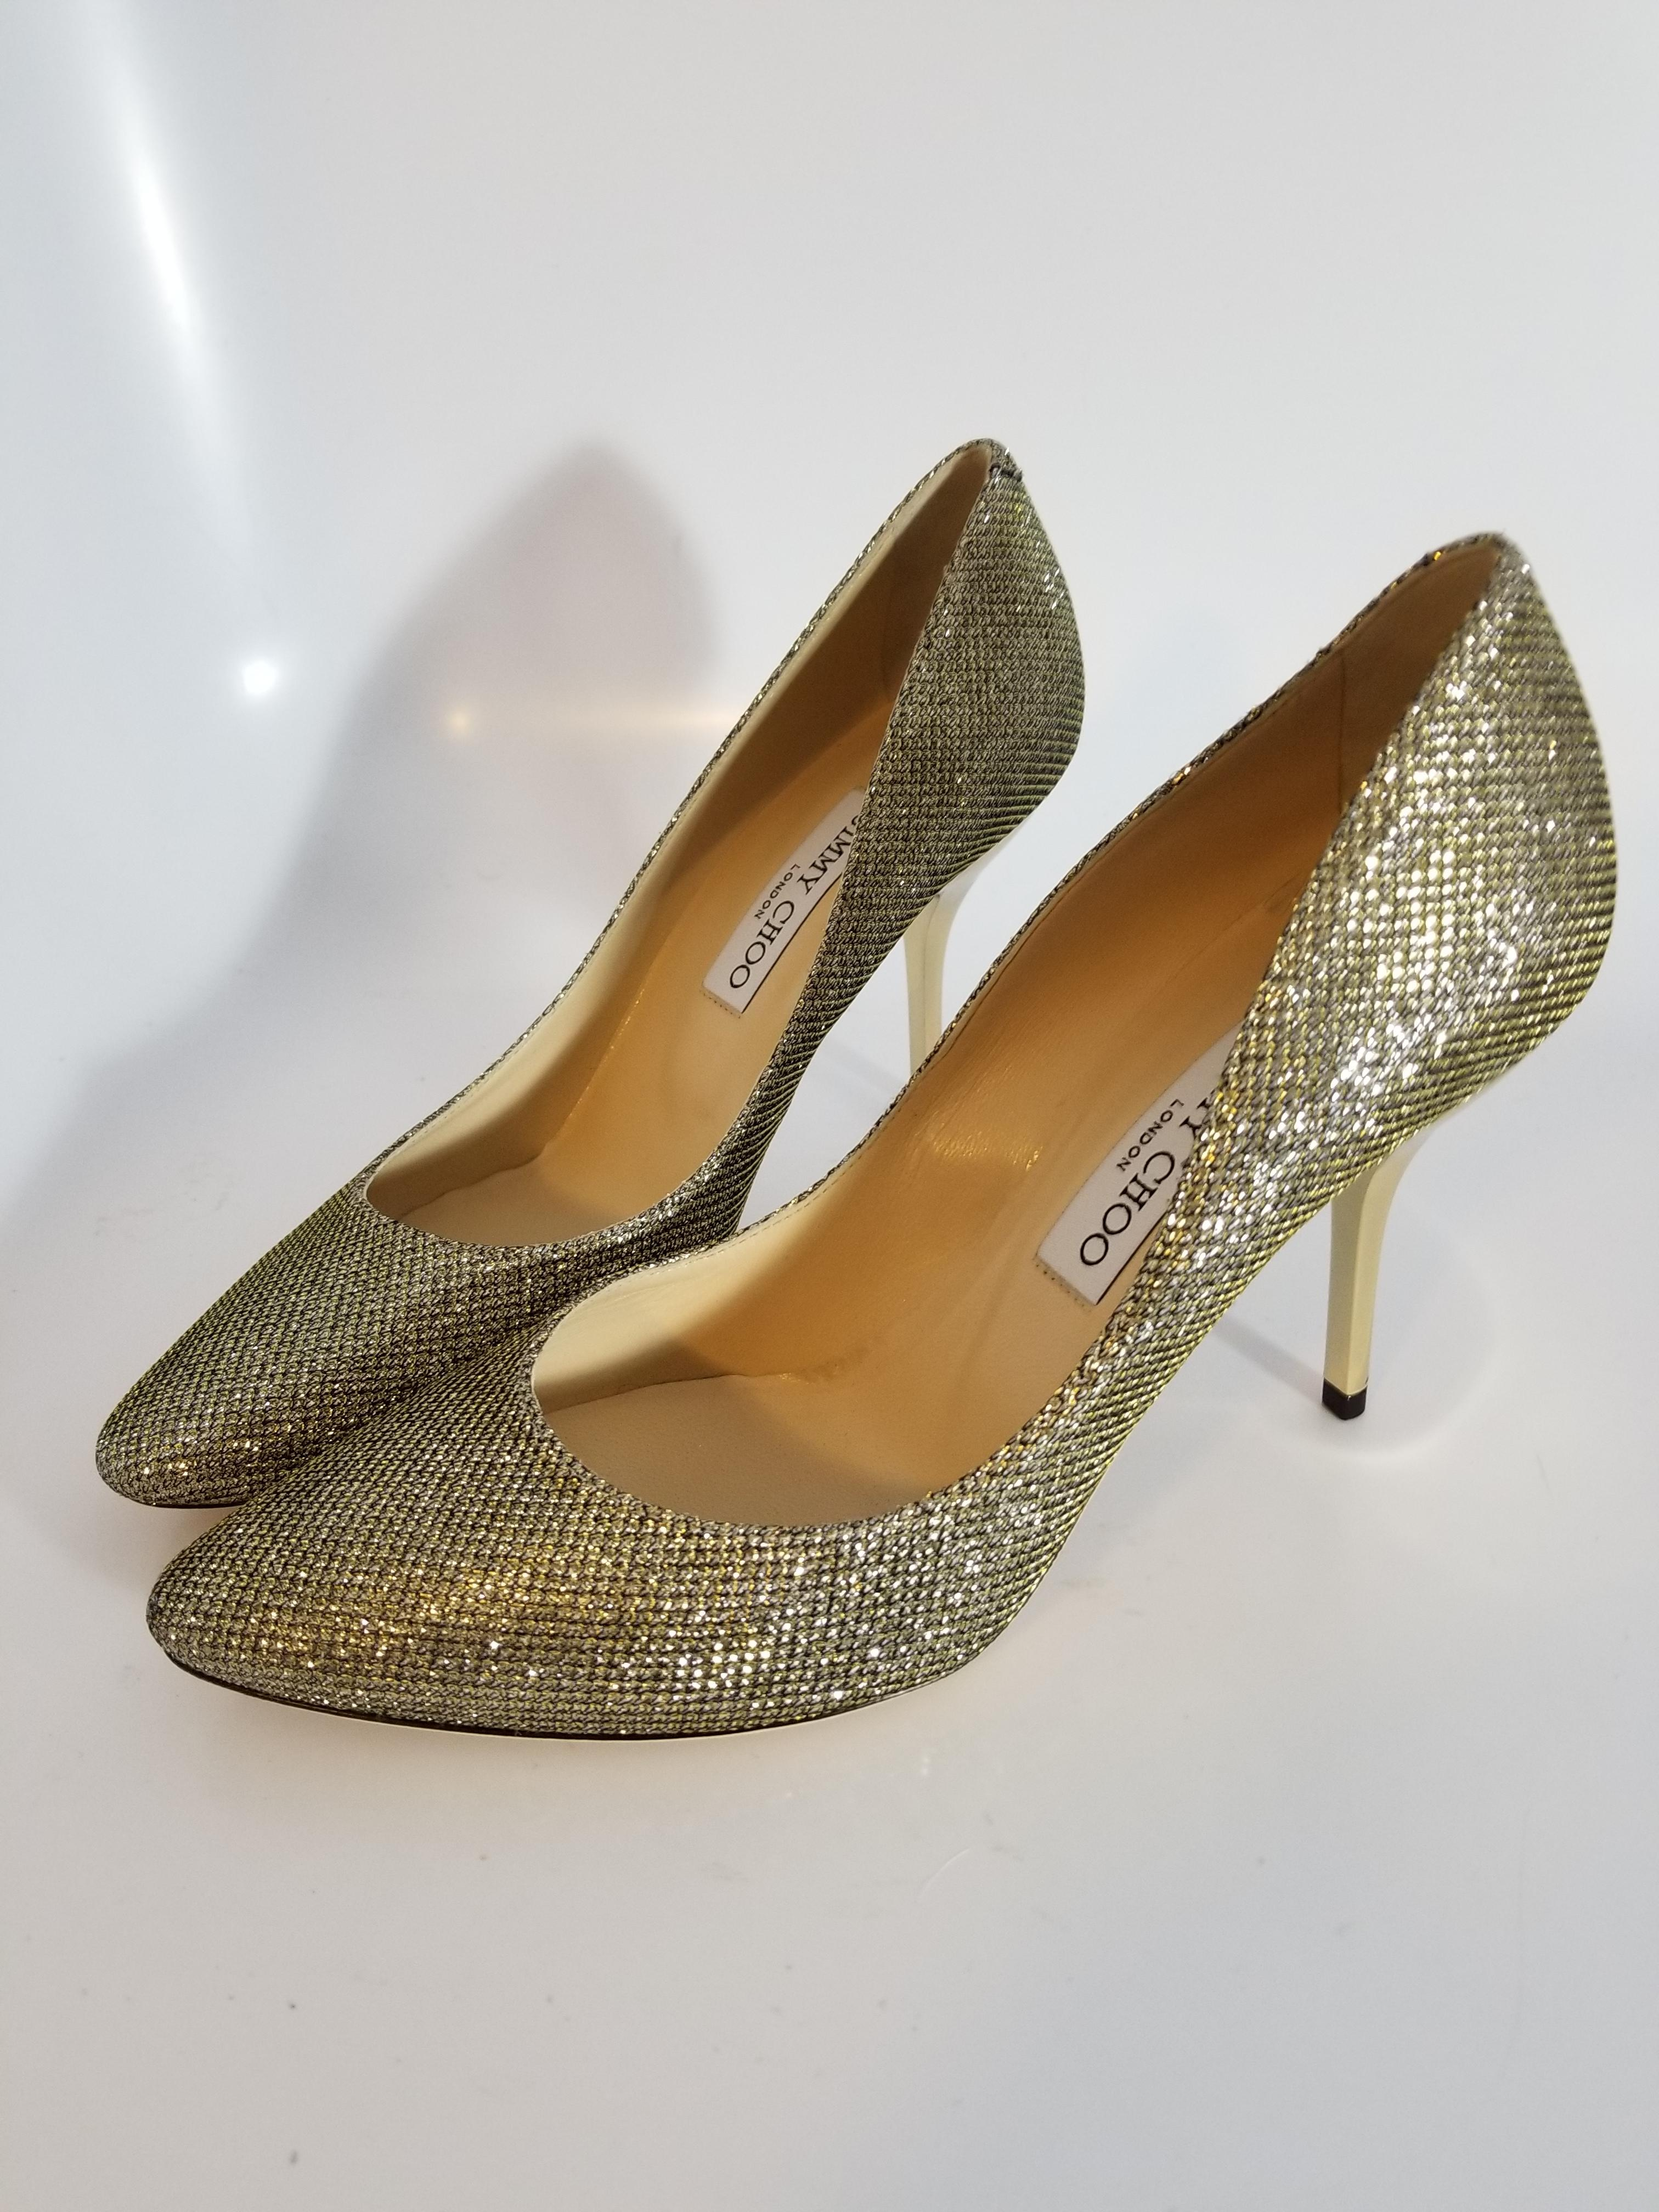 dff89dd39 ... Jimmy Choo Silver Silver Silver  romy  and Golden Shimmer - Pumps Size  EU 39 ...